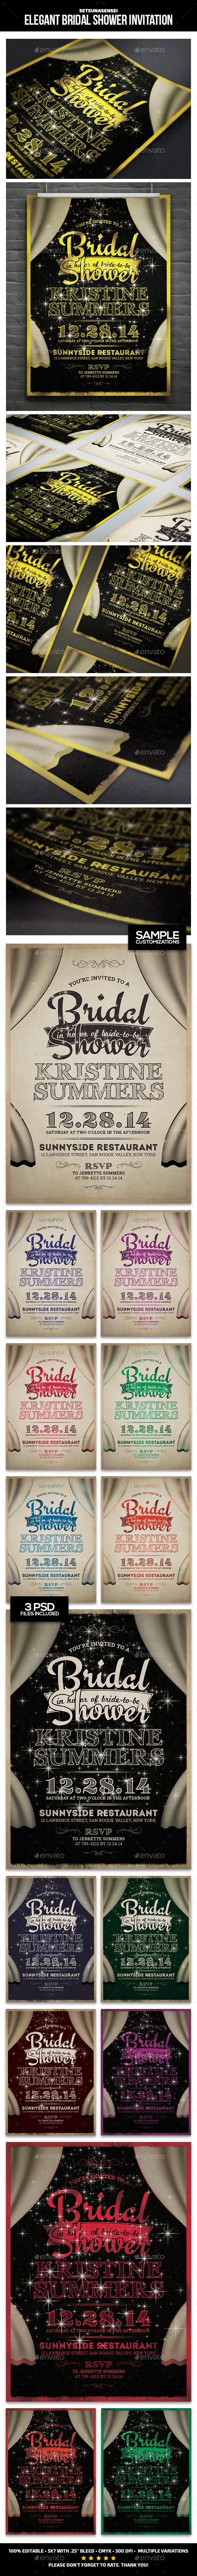 GraphicRiver Elegant Bridal Shower Invitation 9688207